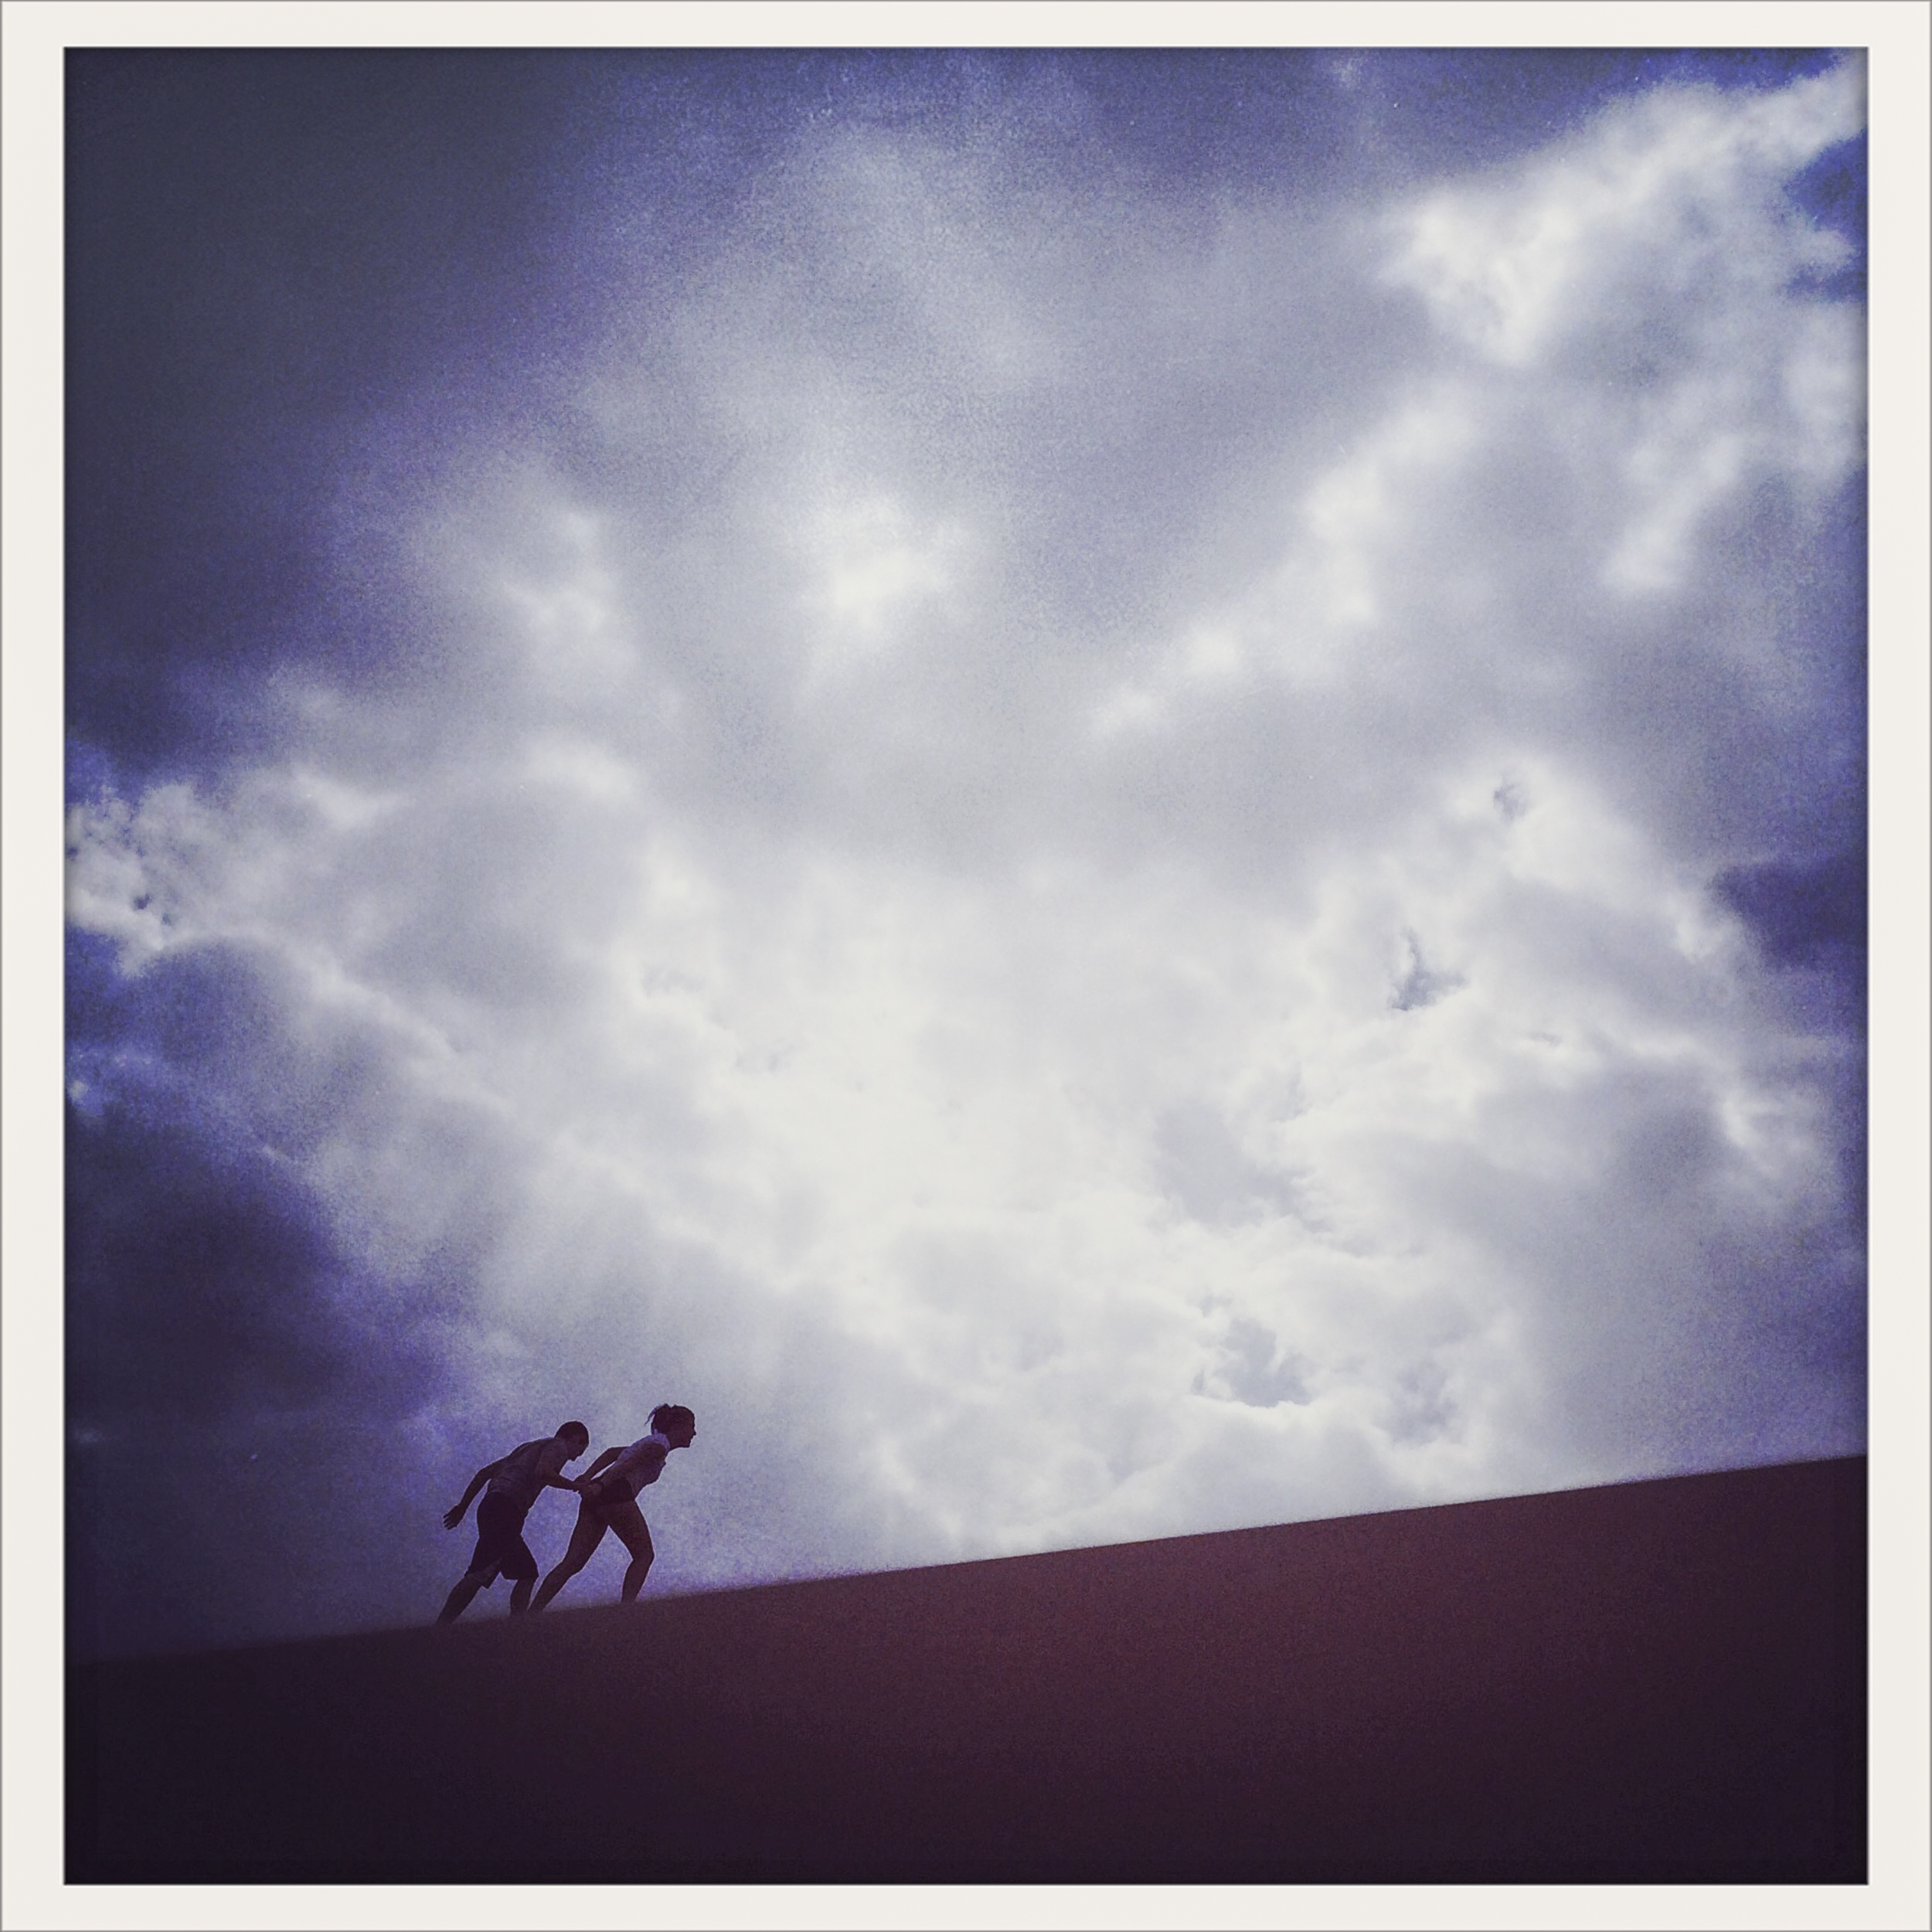 A couple help each other climb a large dune at the Great Sand Dunes National Park in Mosca, Colorado on Monday May 26, 2014.